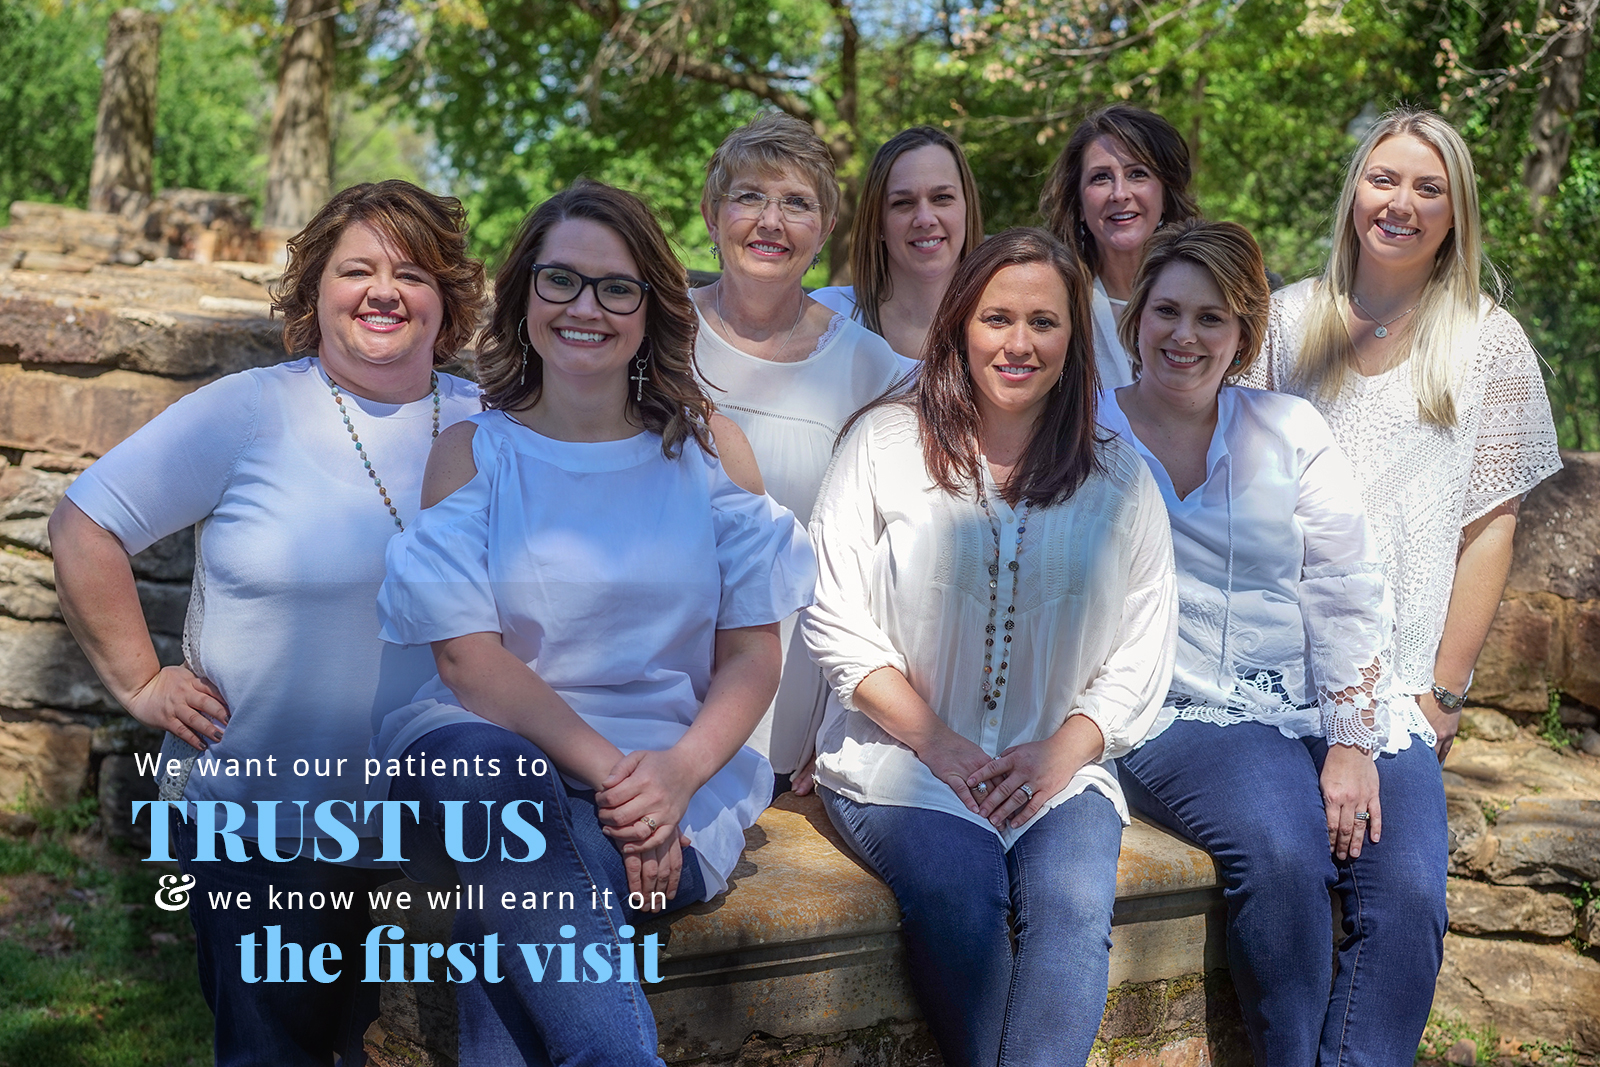 Dental Care South Team